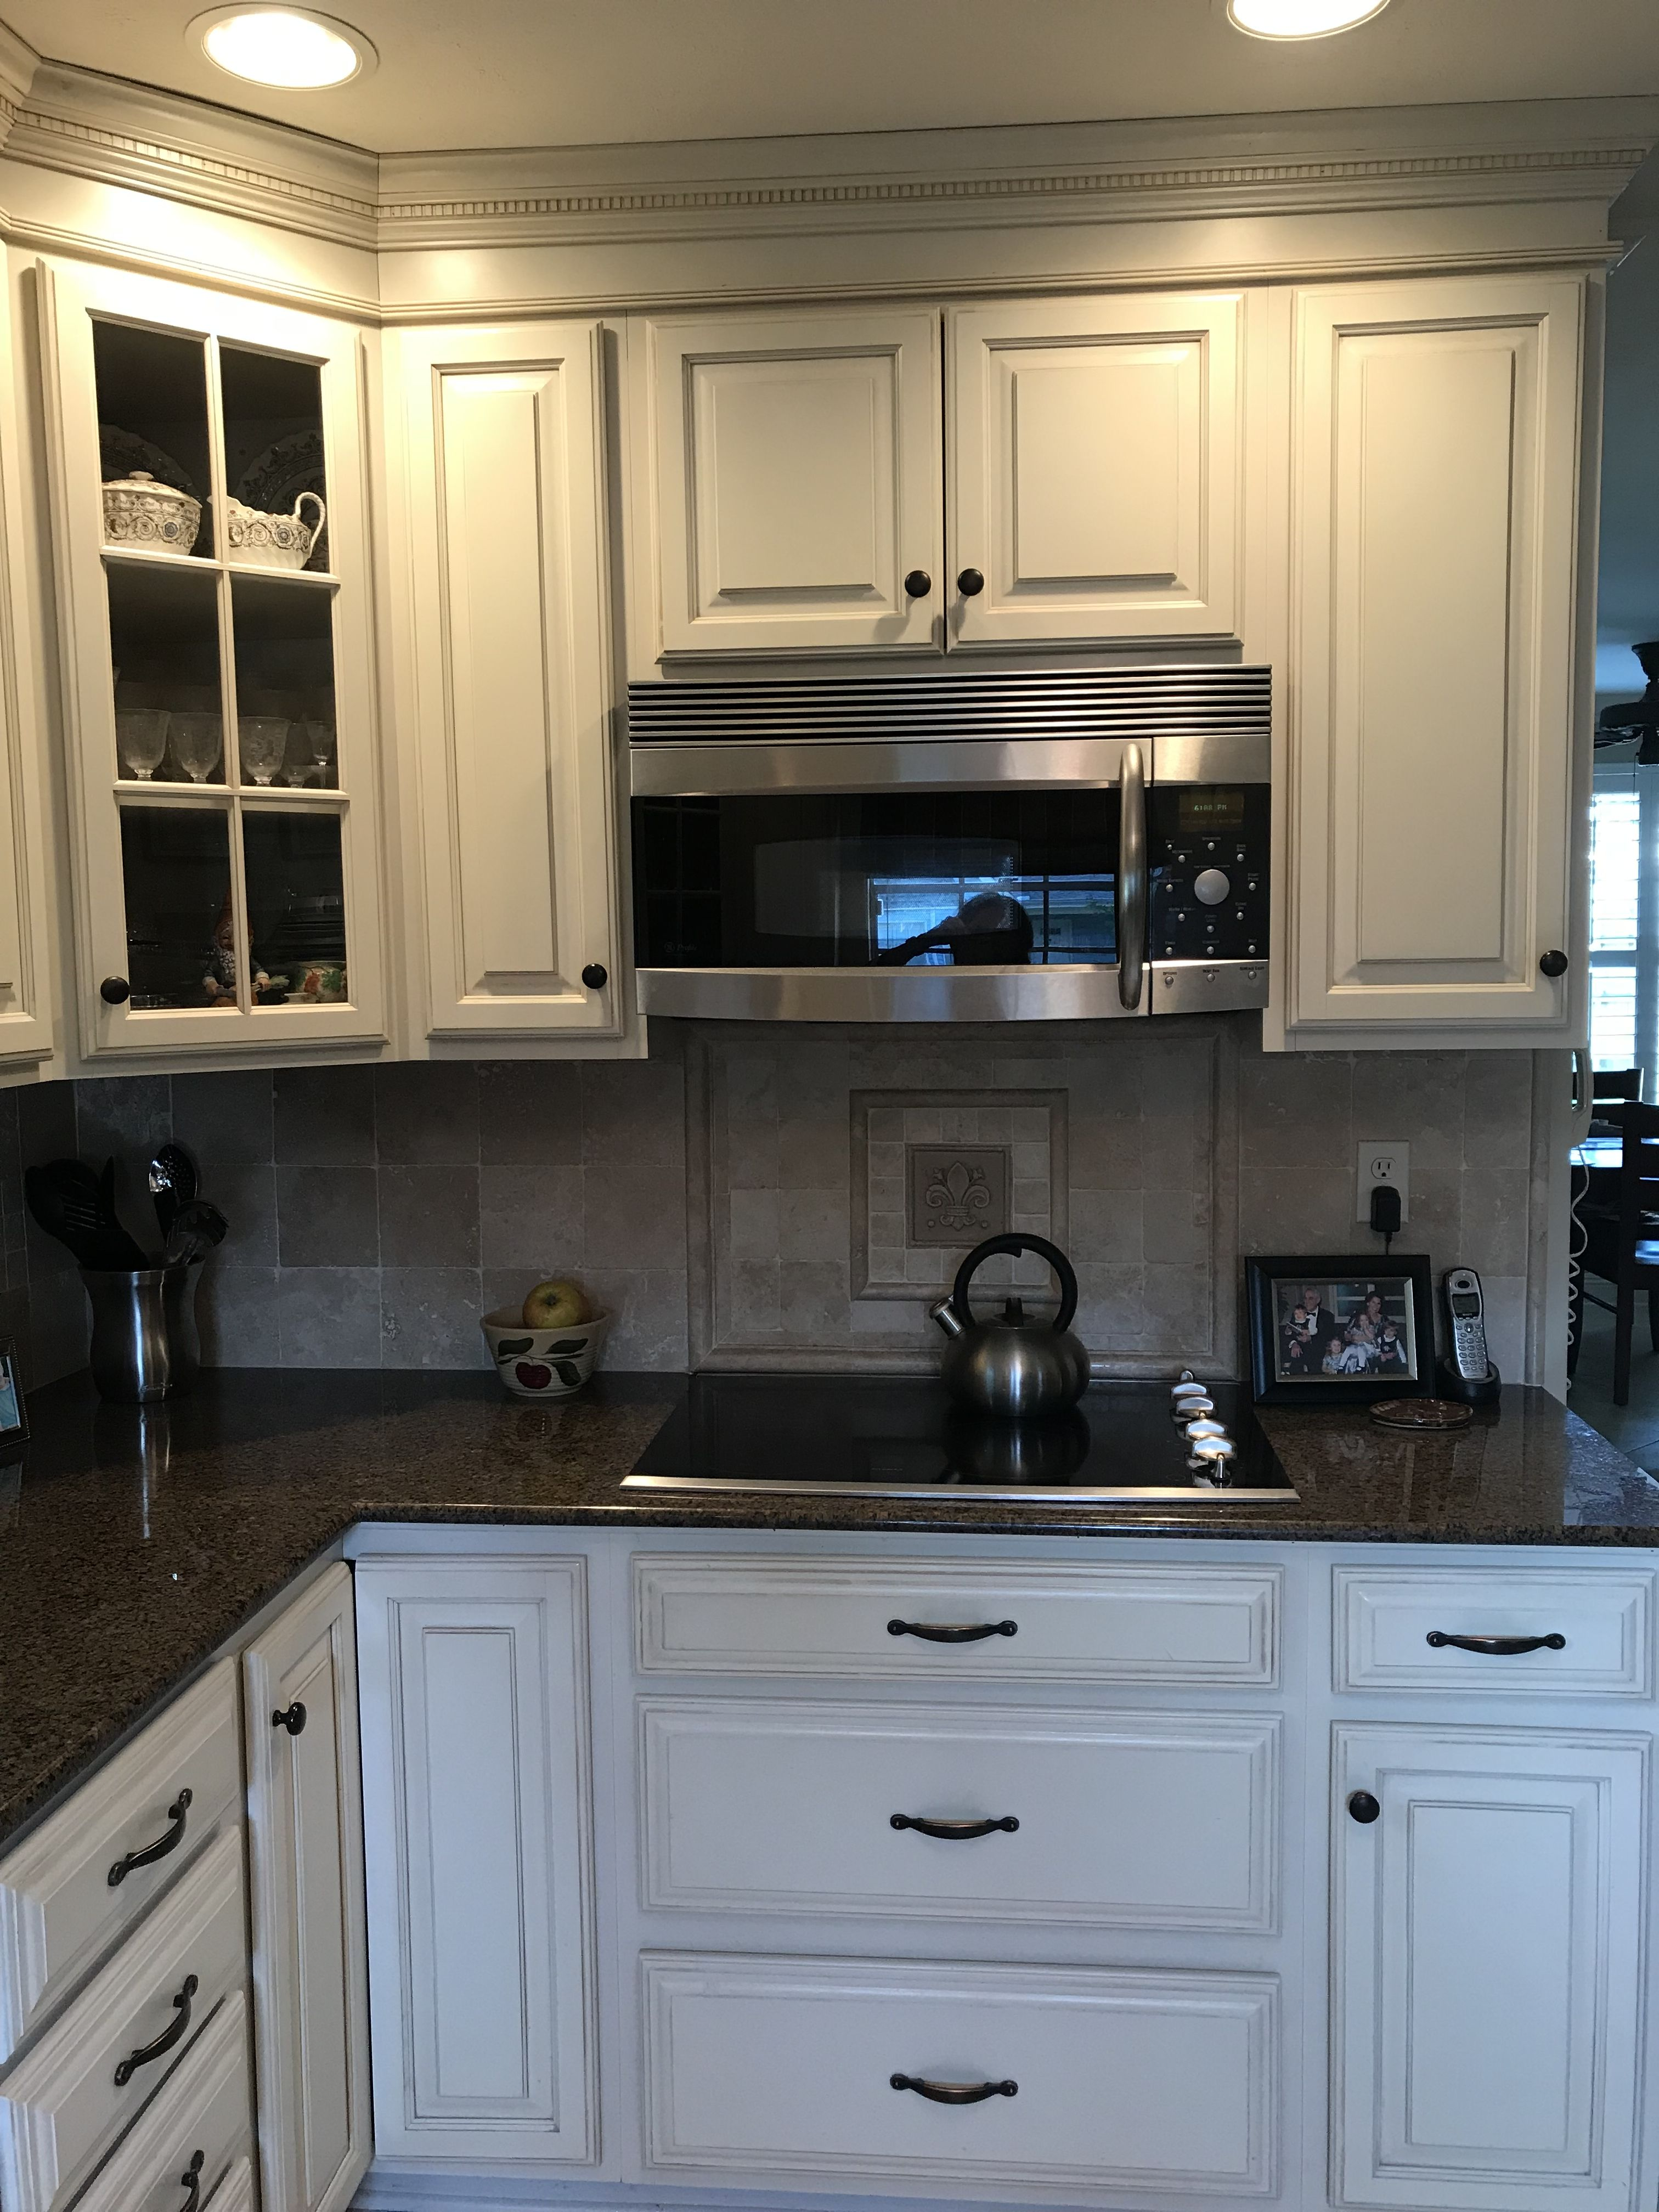 Pin by C. Tankersley on New Orleans house | Kitchen cabinets, New ...